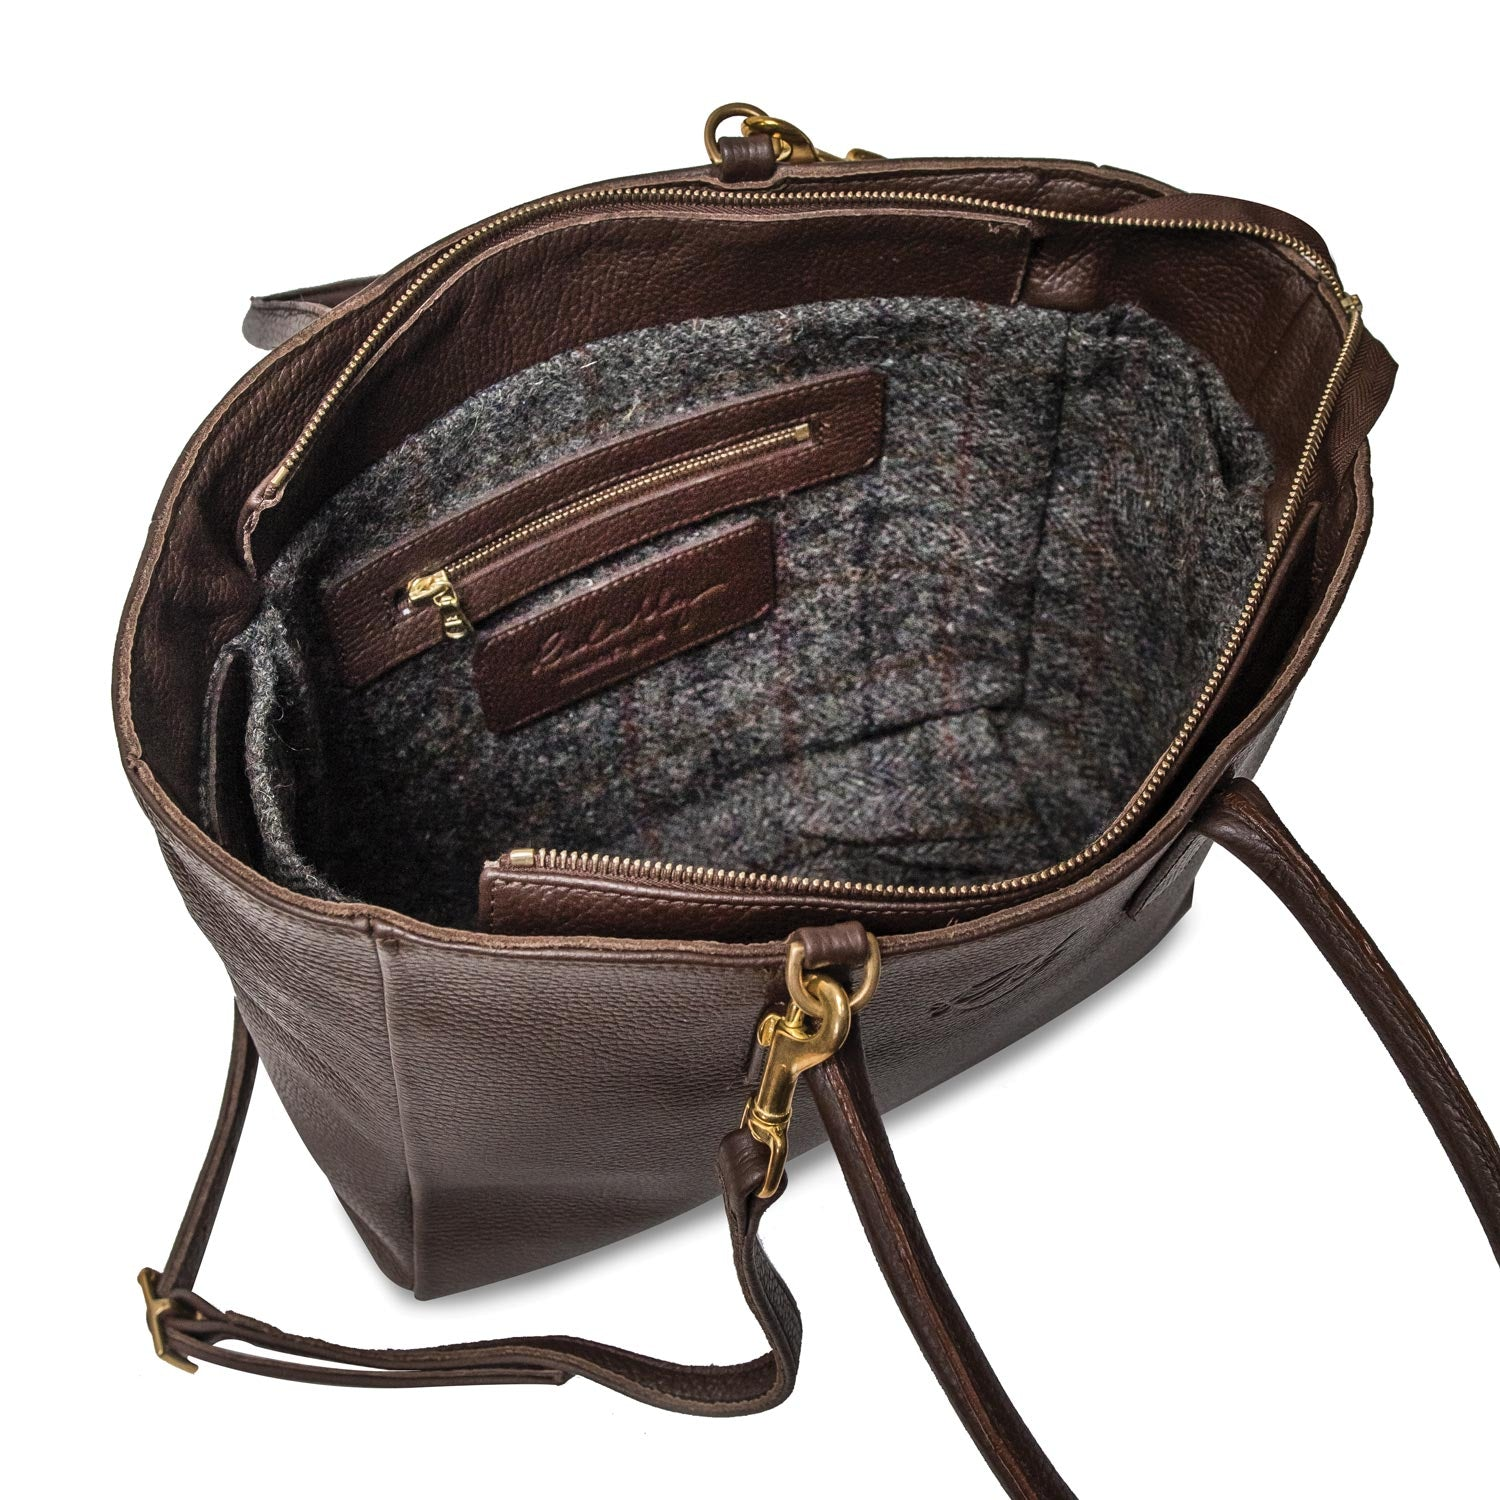 Sweet Pea Handbag in Chocolate brown